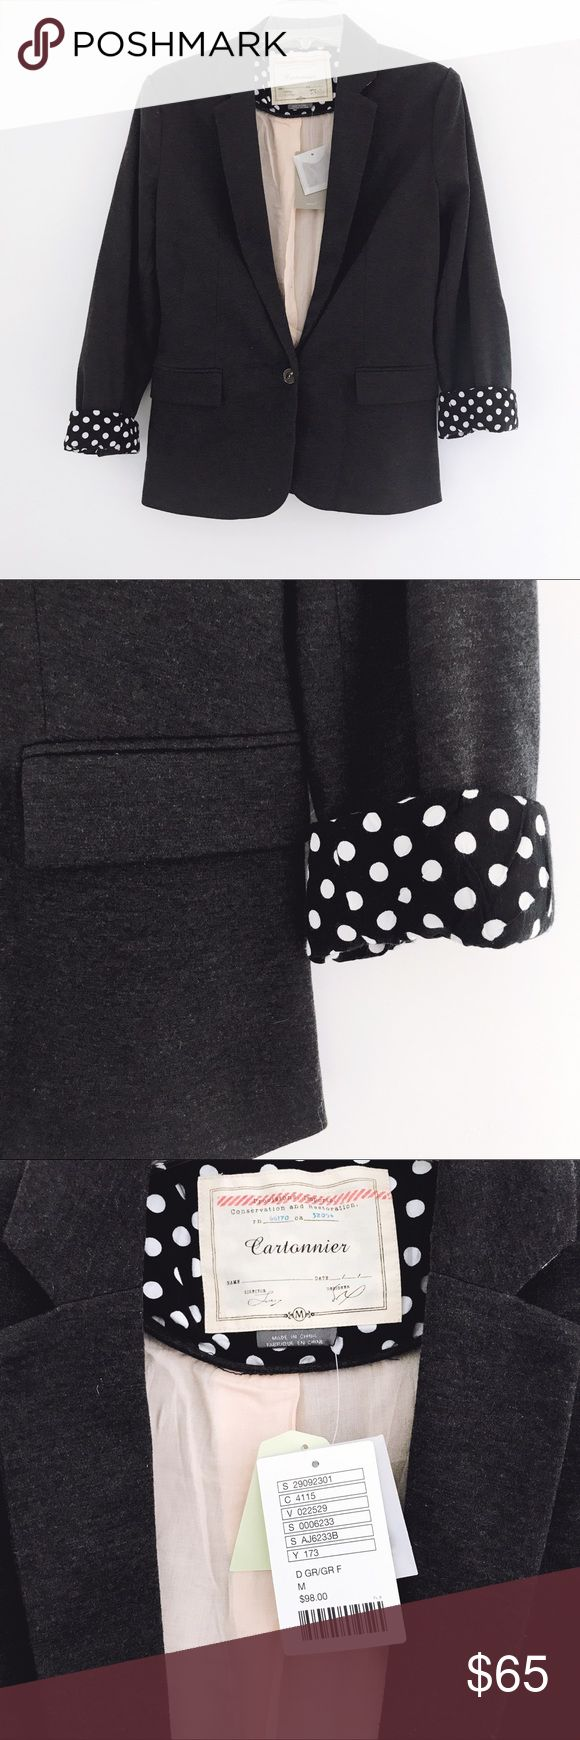 Anthropologie || Blazer Anthropologie Cartonnier Dotside blazer. By combining feminine sensibilities with menswear-inspired materials and contemporary cuts, Cartonnier creates whimsical yet intellectual pieces, such as this preppy knit jacket. Gray blazer with black and white polka dot sleeve lining. Fully lined. Cute elbow patches. Shell: 73% Polyester / 27% Cotton. Contrast: 95% Polyester / 5% Spandex. Lining: 100% Rayon. Anthropologie Jackets & Coats Blazers